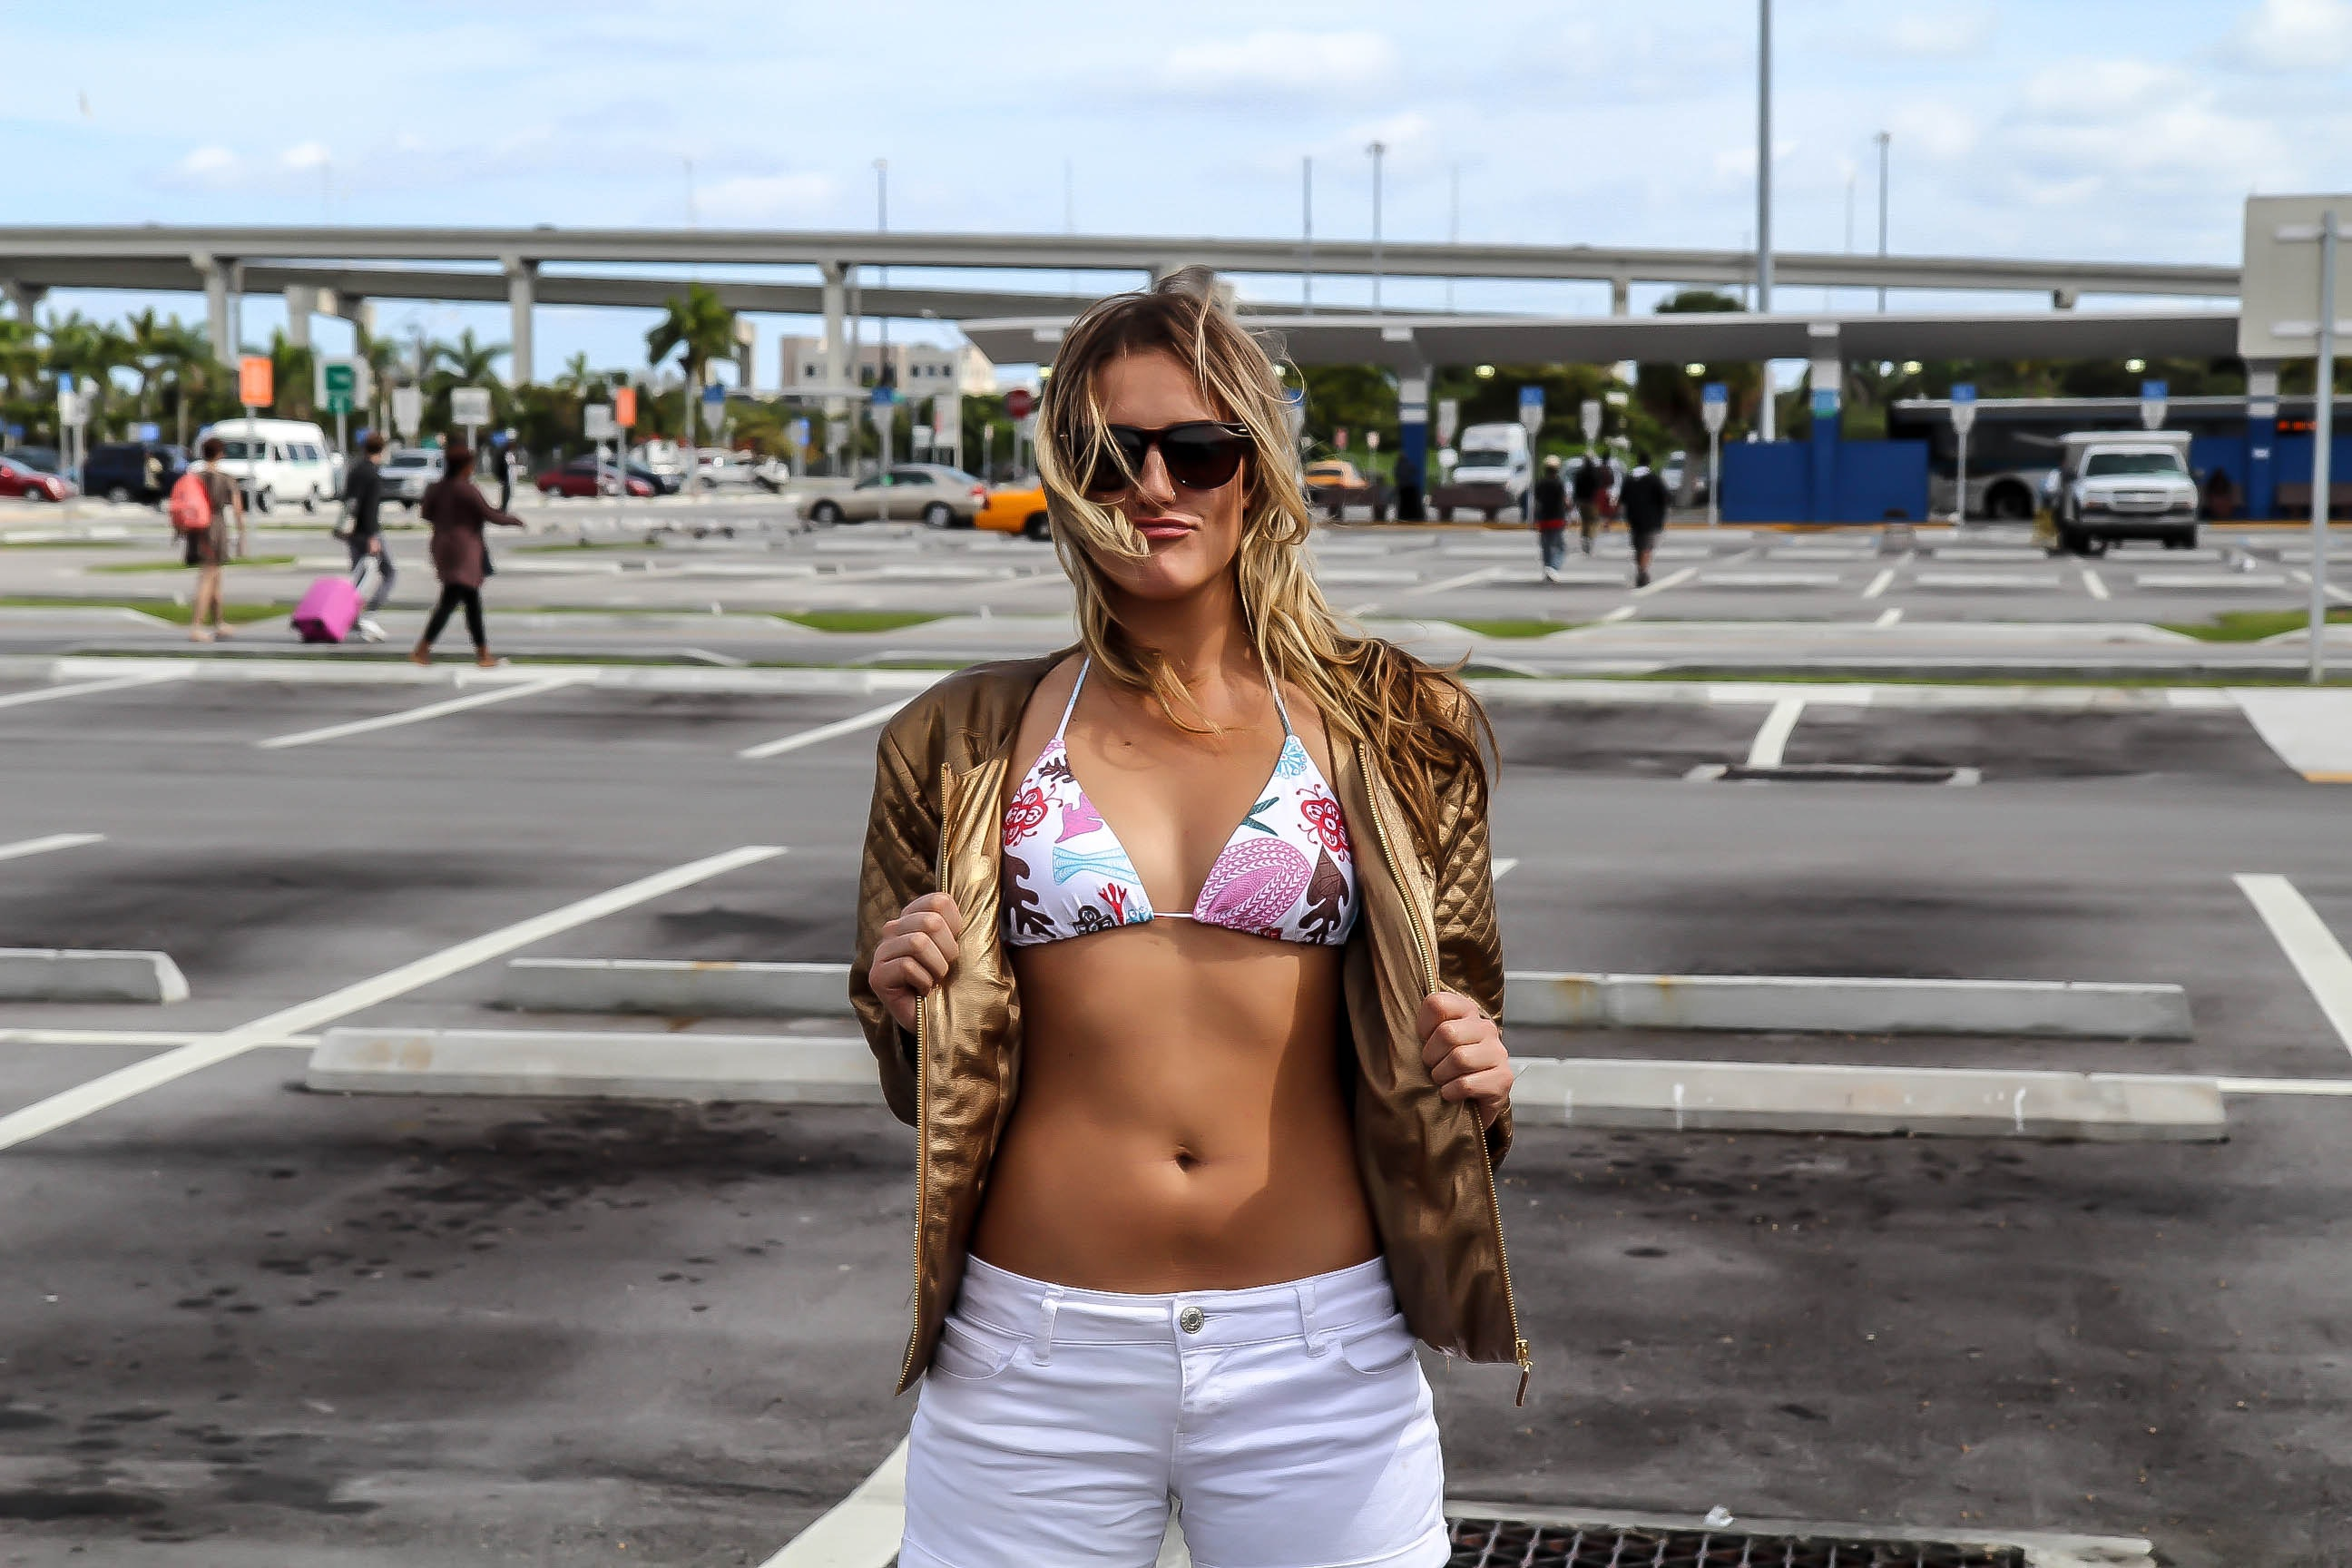 Woman Wearing White and Pink Floral Bikini Top and White Shorts, Road, Young, Woman, Vehicles, HQ Photo